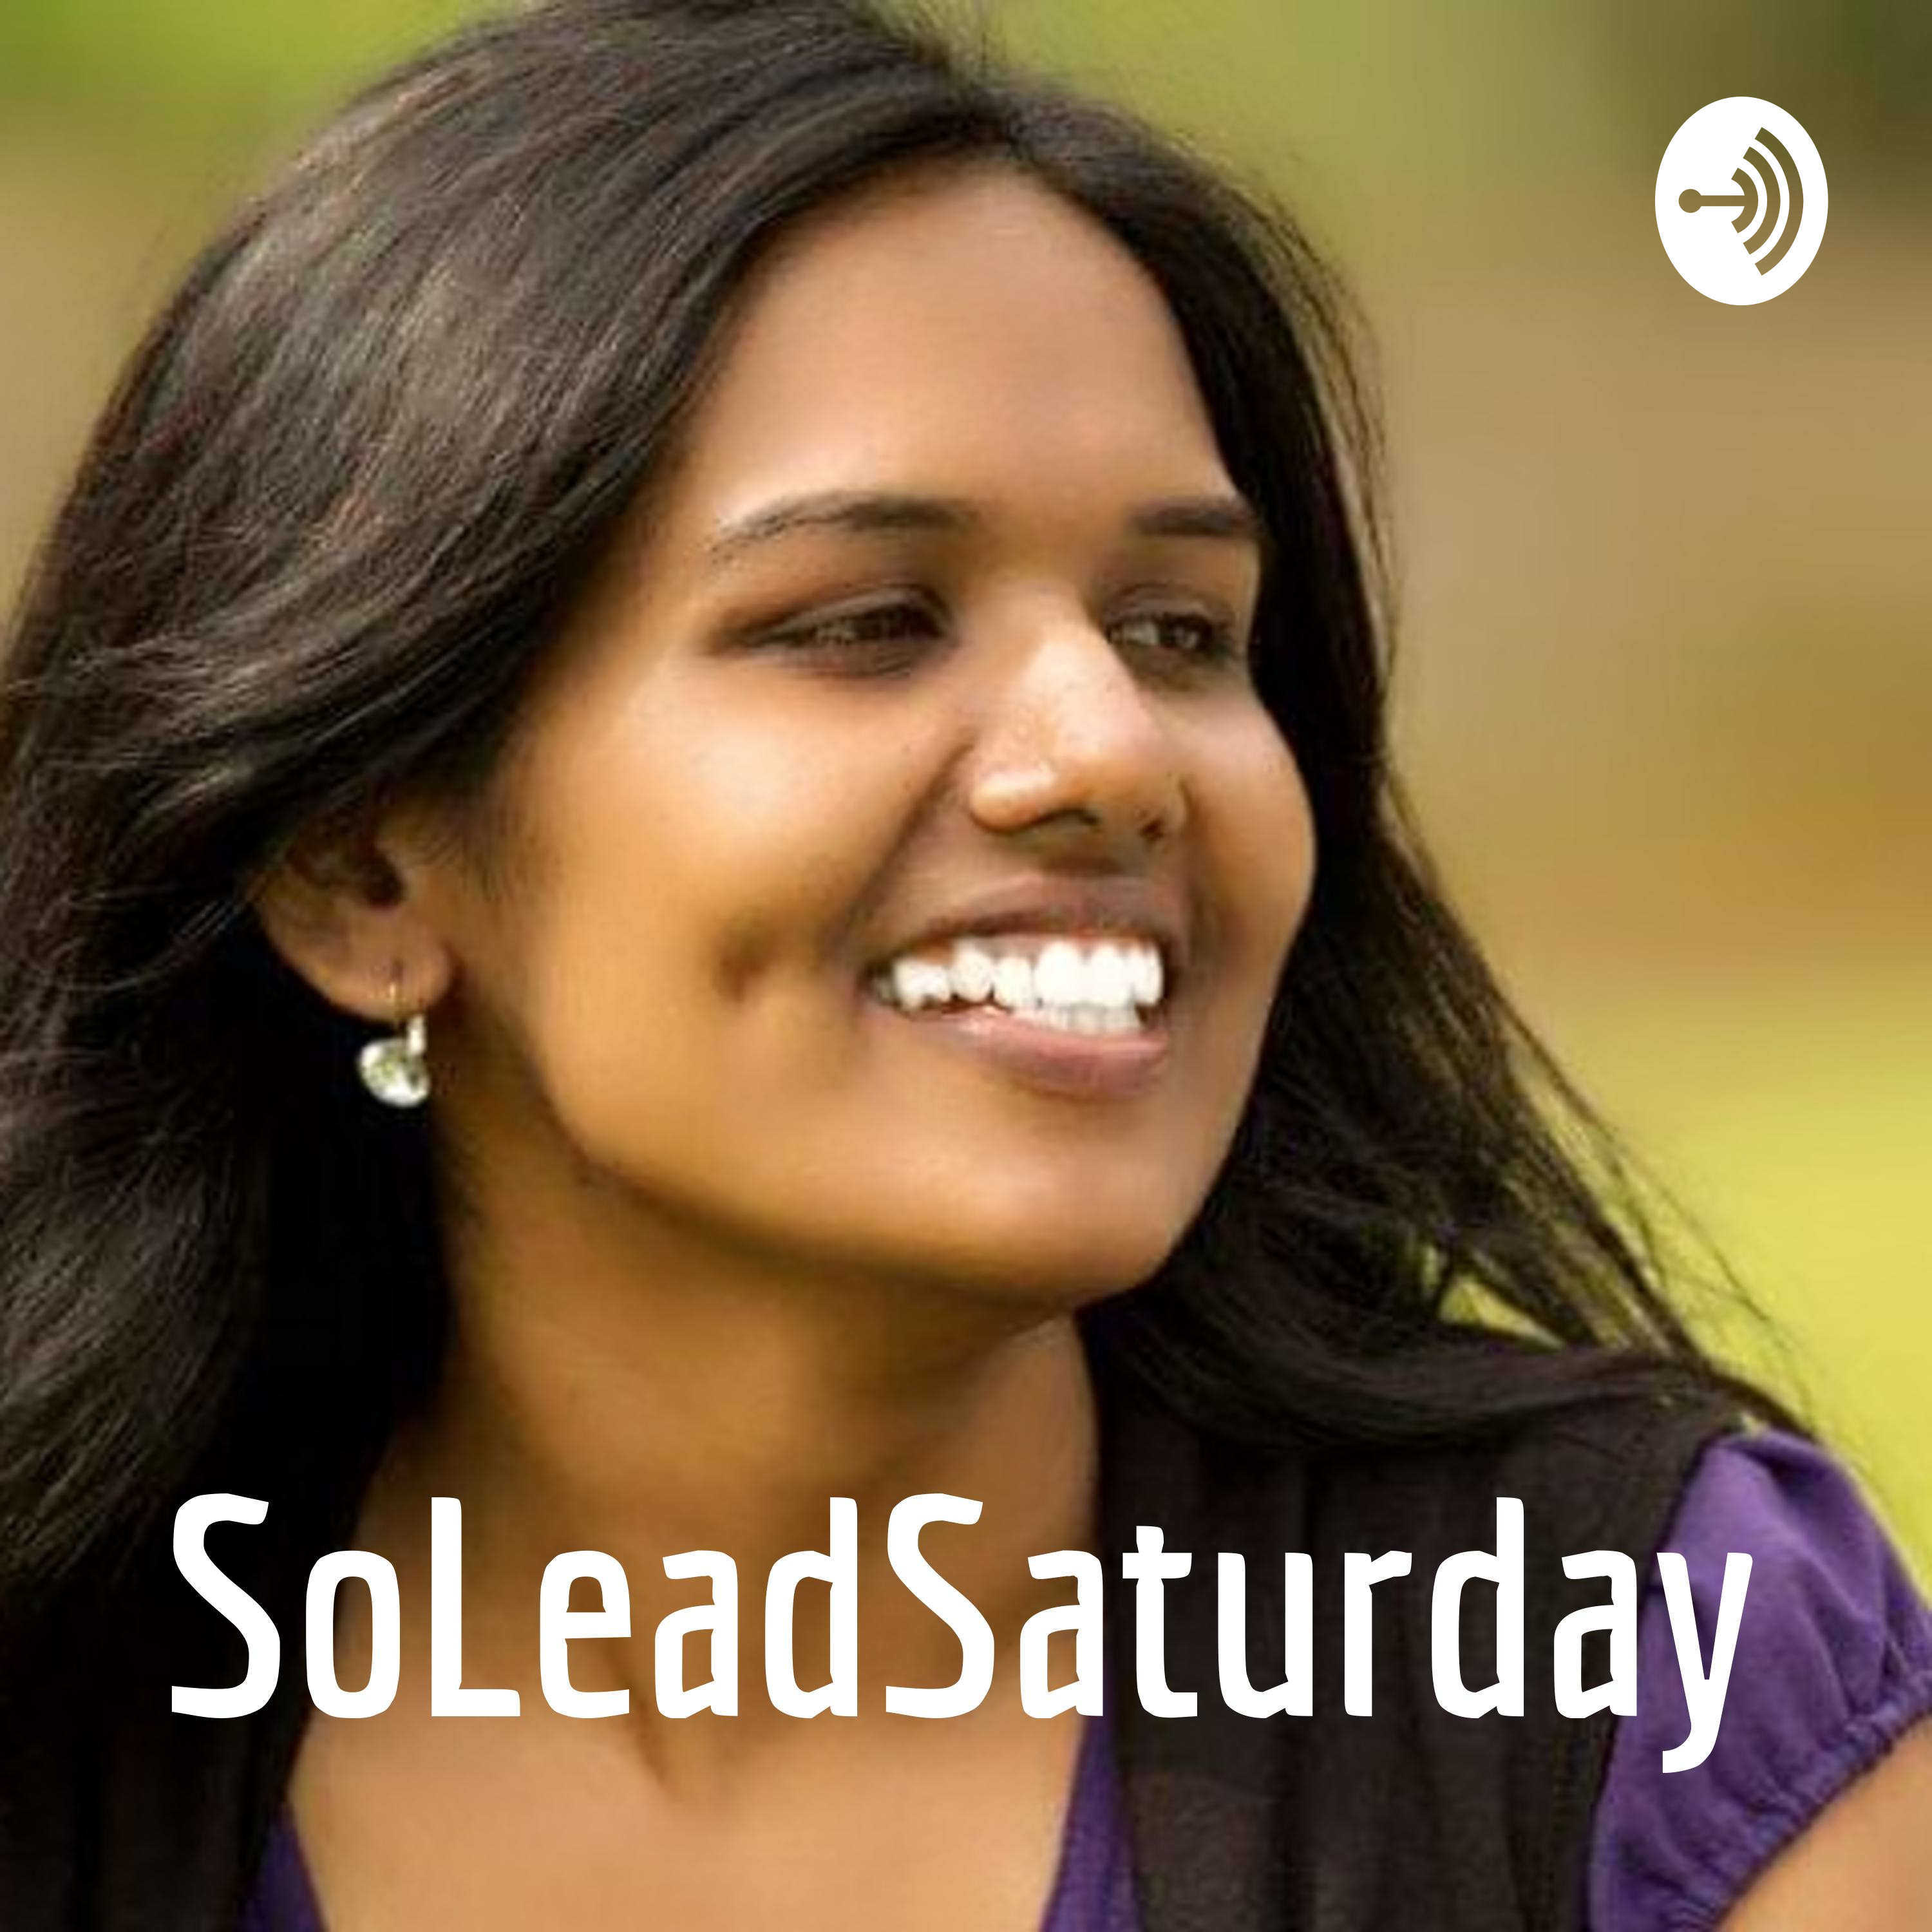 SoLeadSaturday - Episode 47 - Christina Stathopoulos #dataanalytics #consultant #leadership #growth #career #dataexpert